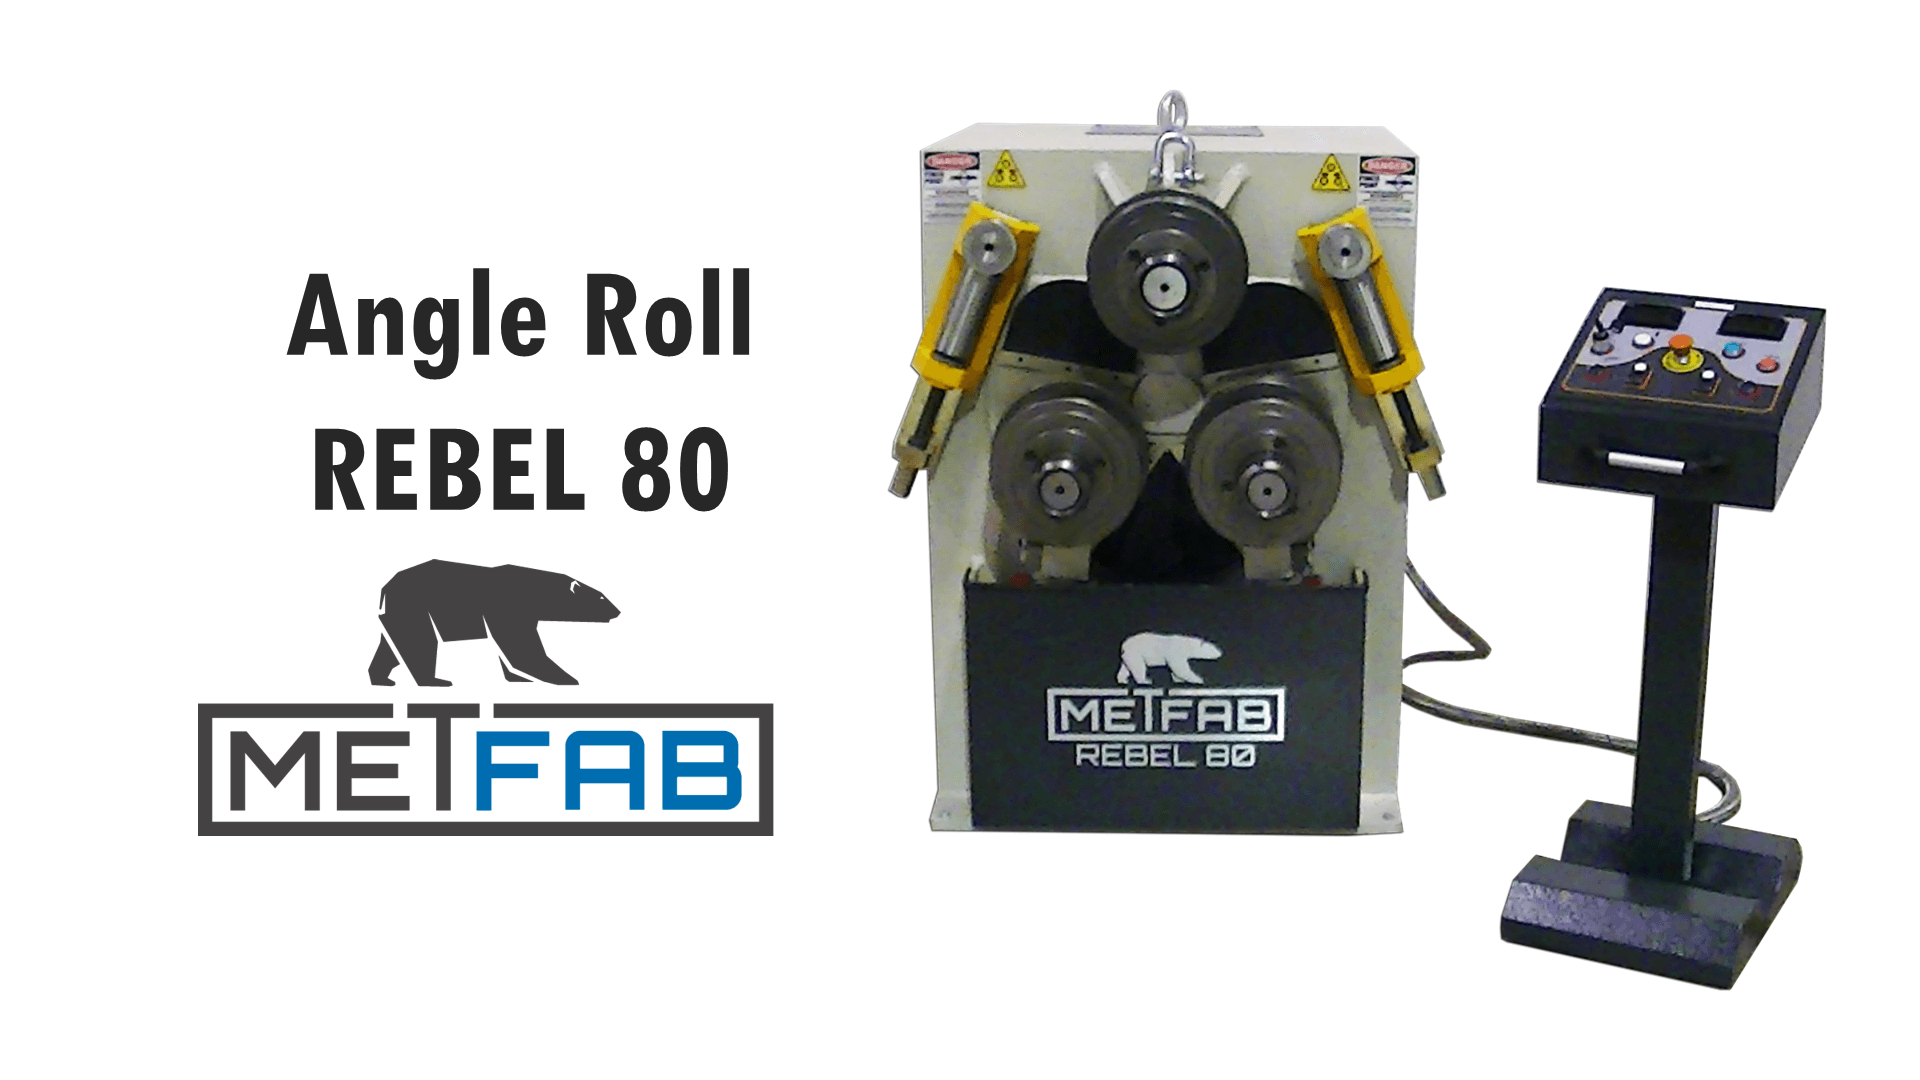 Angle roll machine - Video of the Rebel 80]